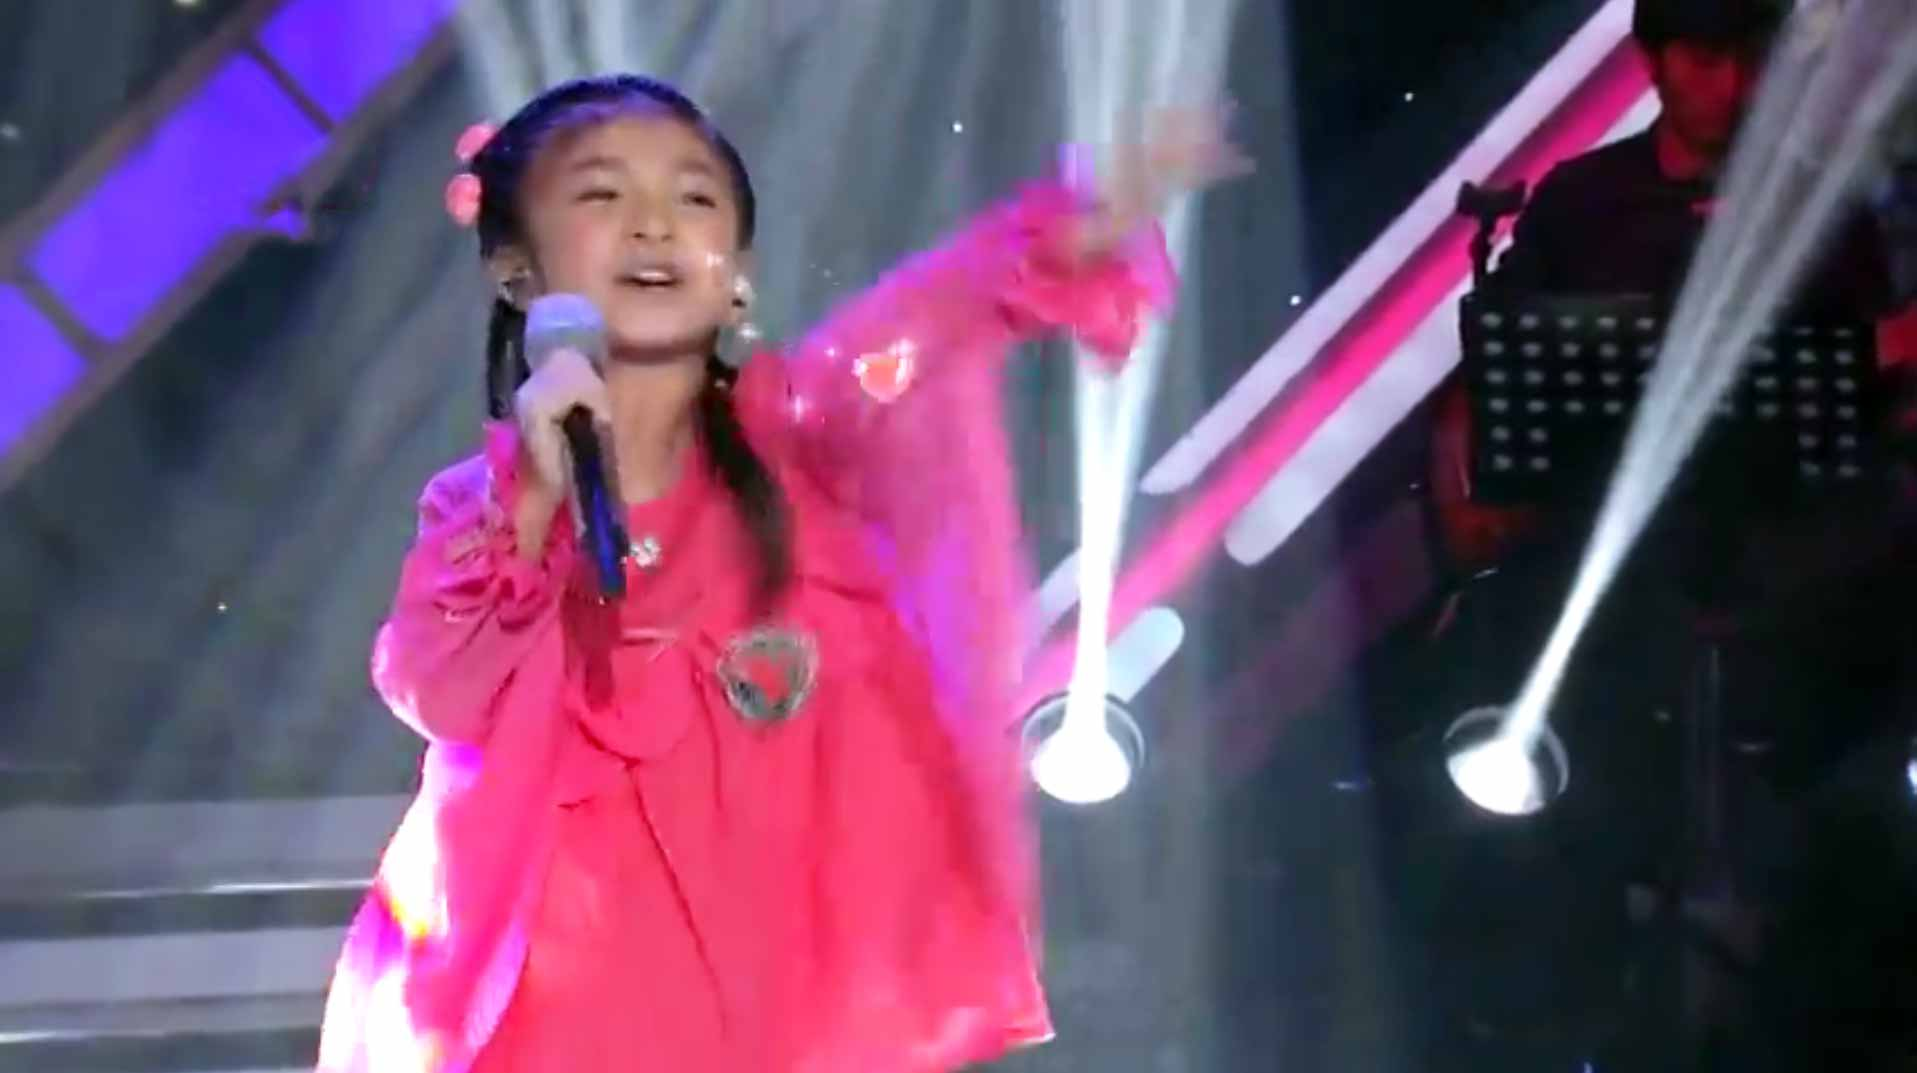 5-year-old Celine Tam - 'You Raise Me Up'